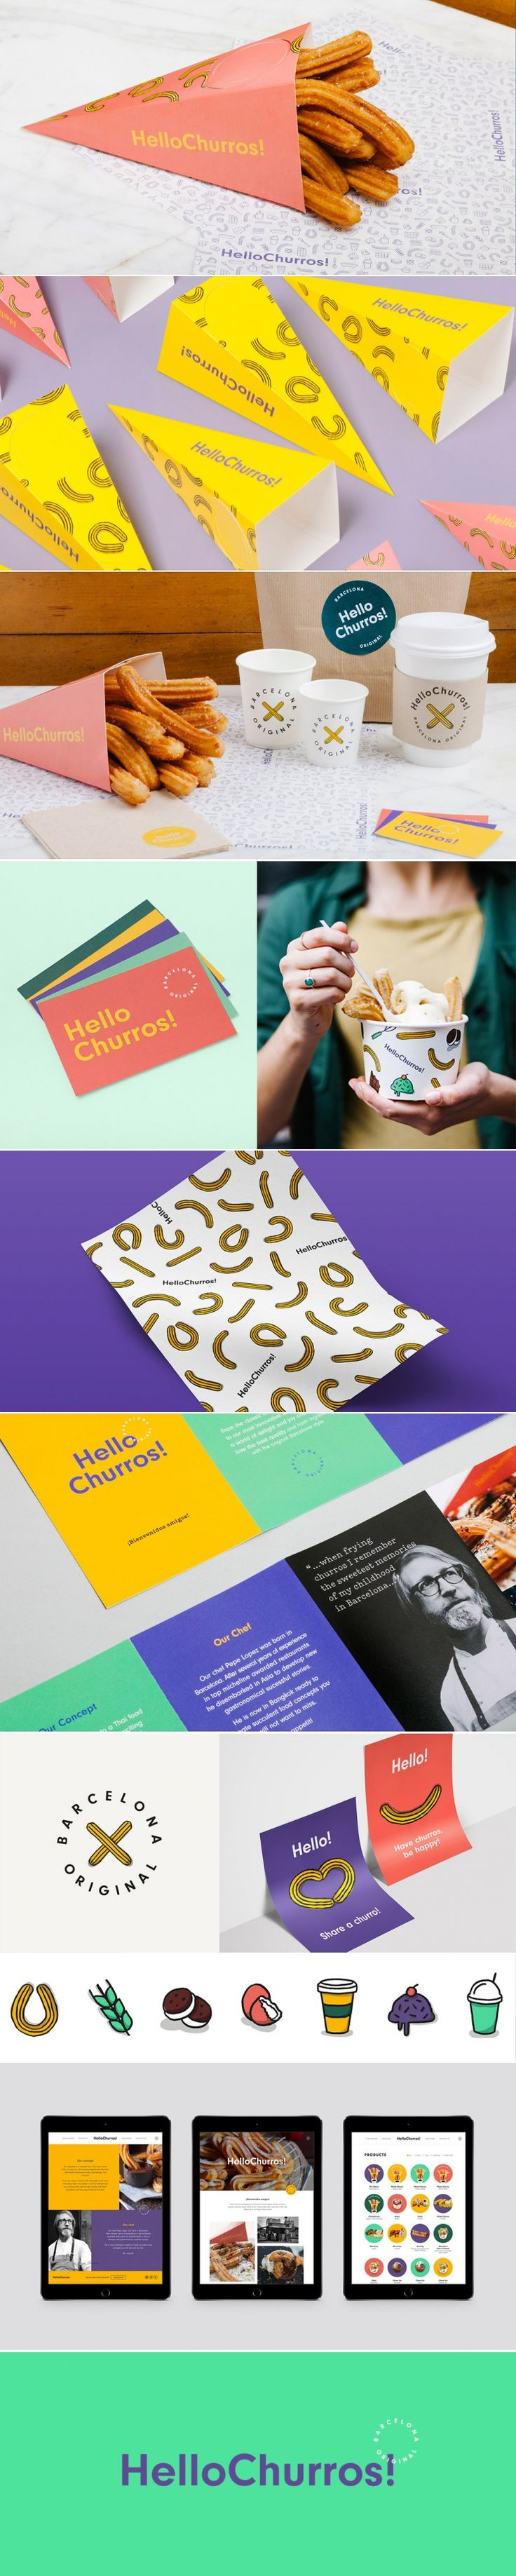 Say Hello to HelloChurros! — The Dieline | Packaging & Branding Design & Innovation News